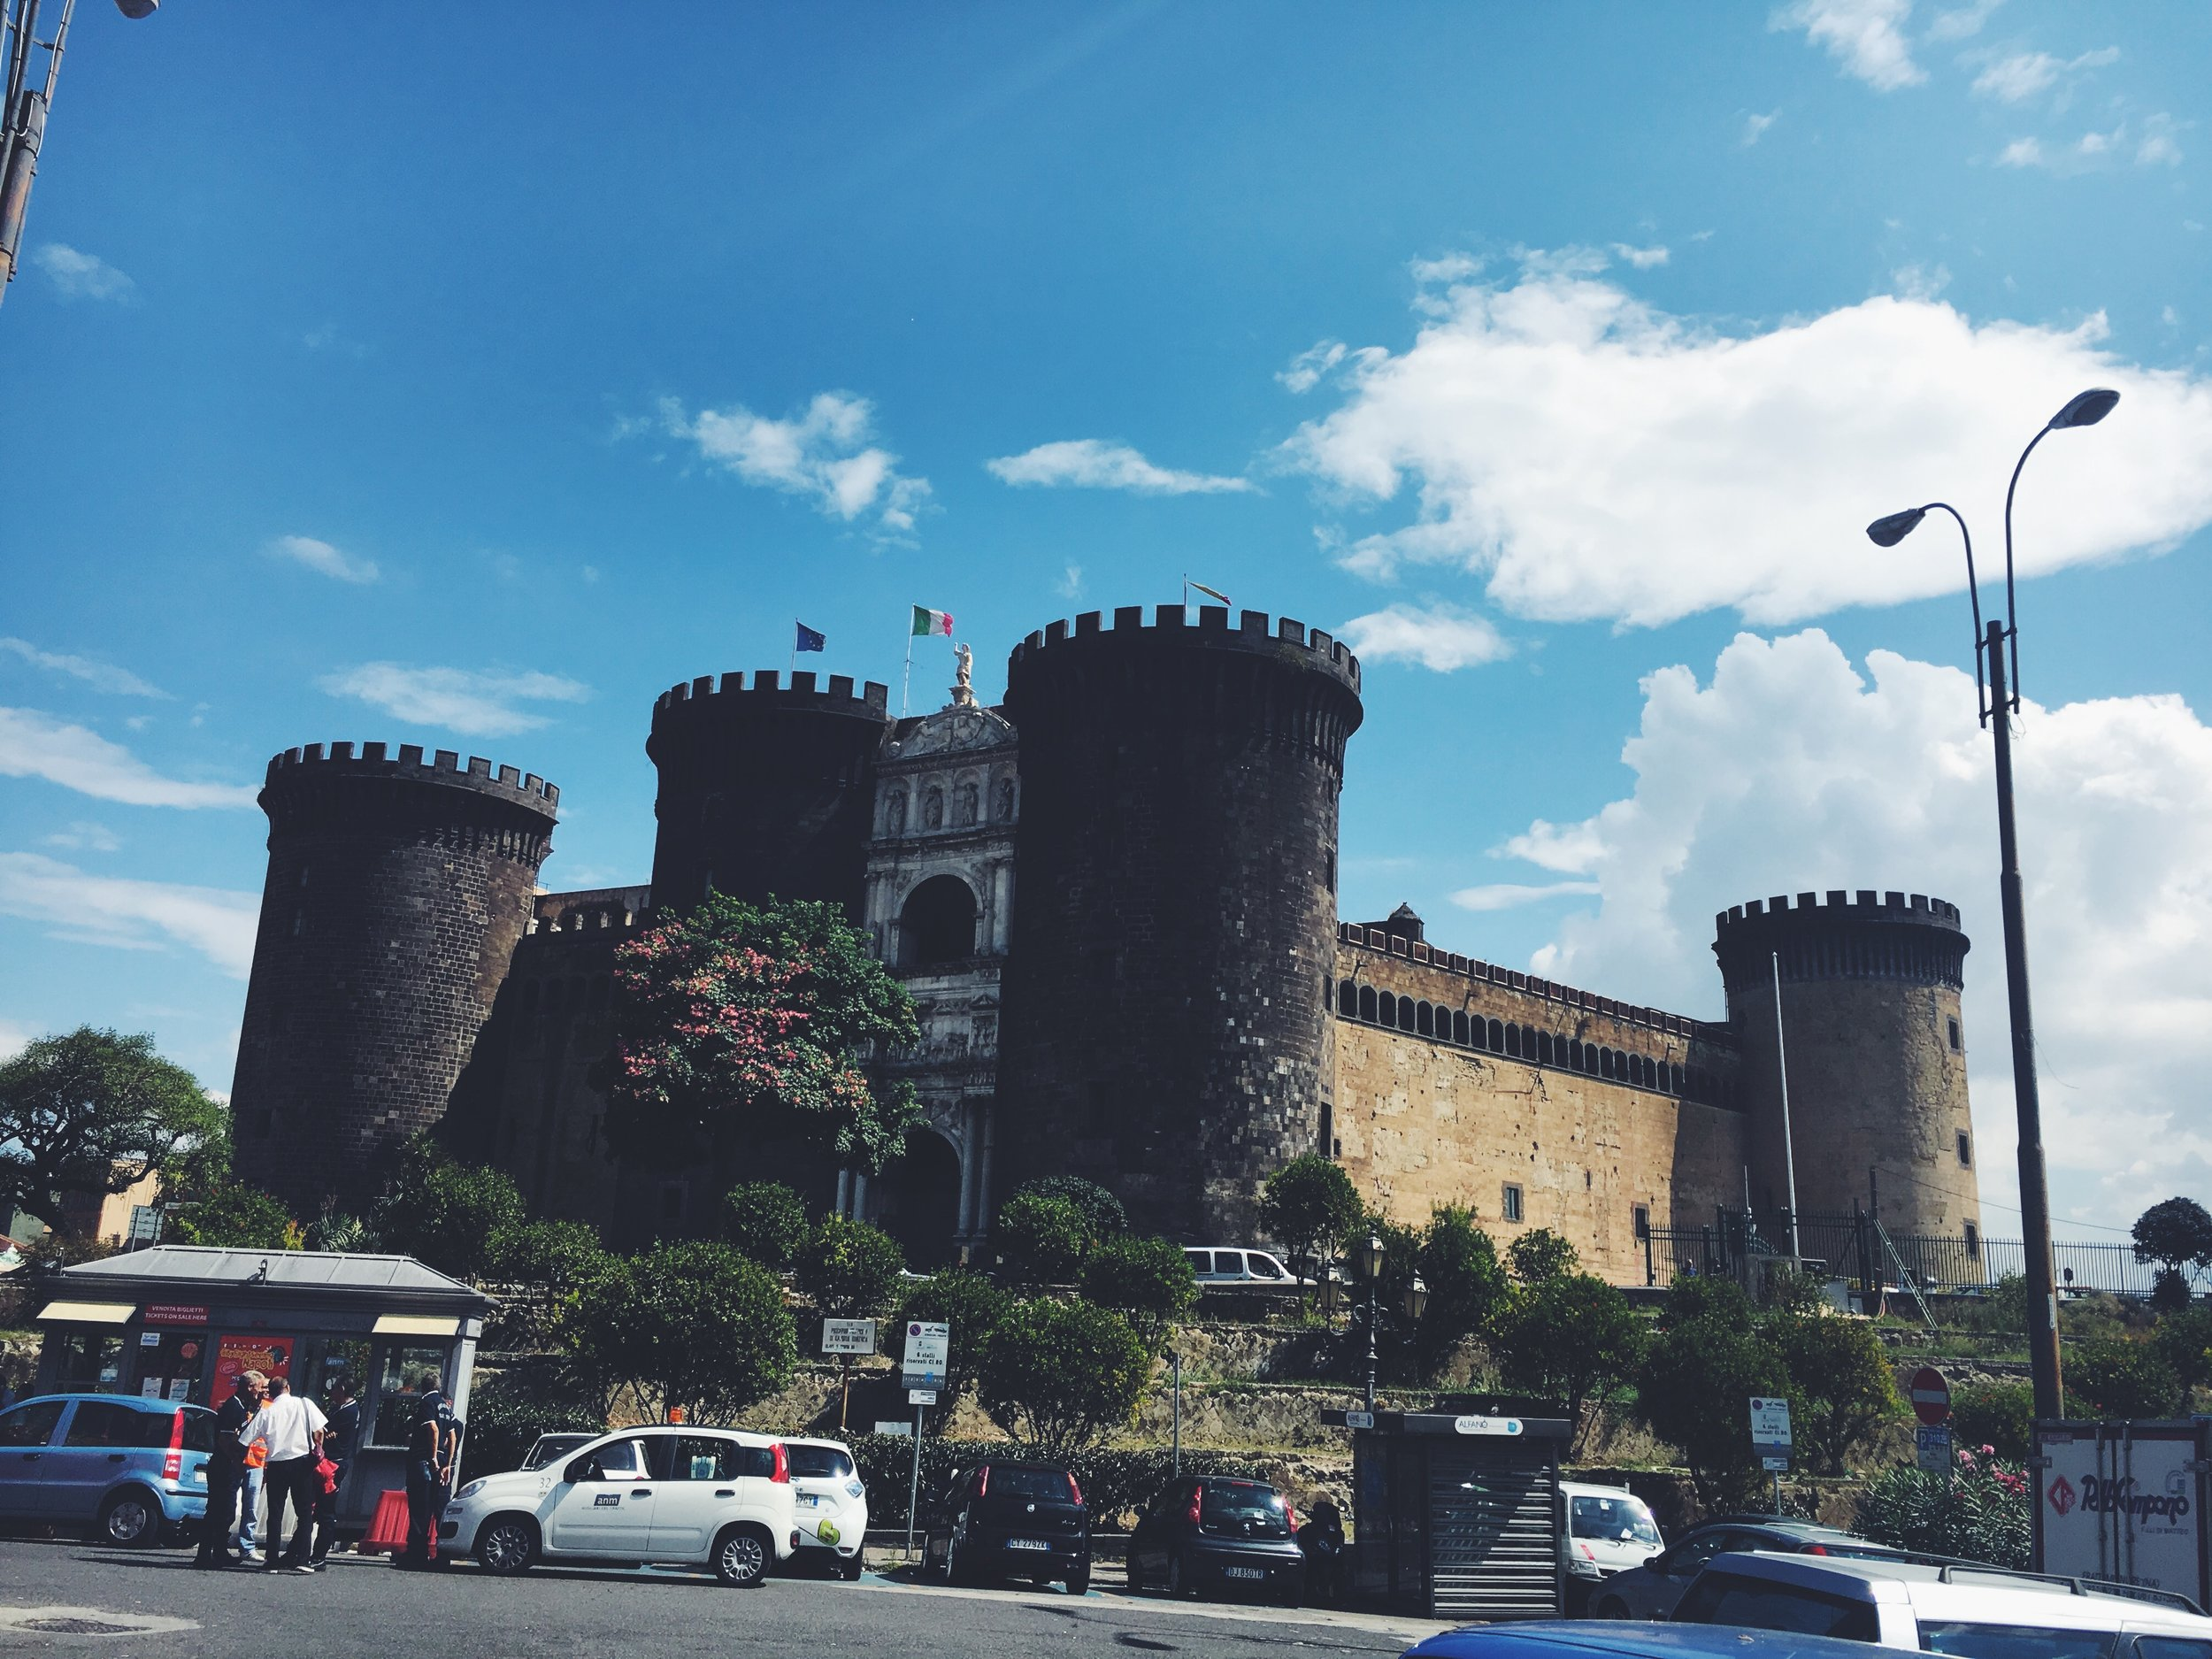 The Medieval Castel Nuovo